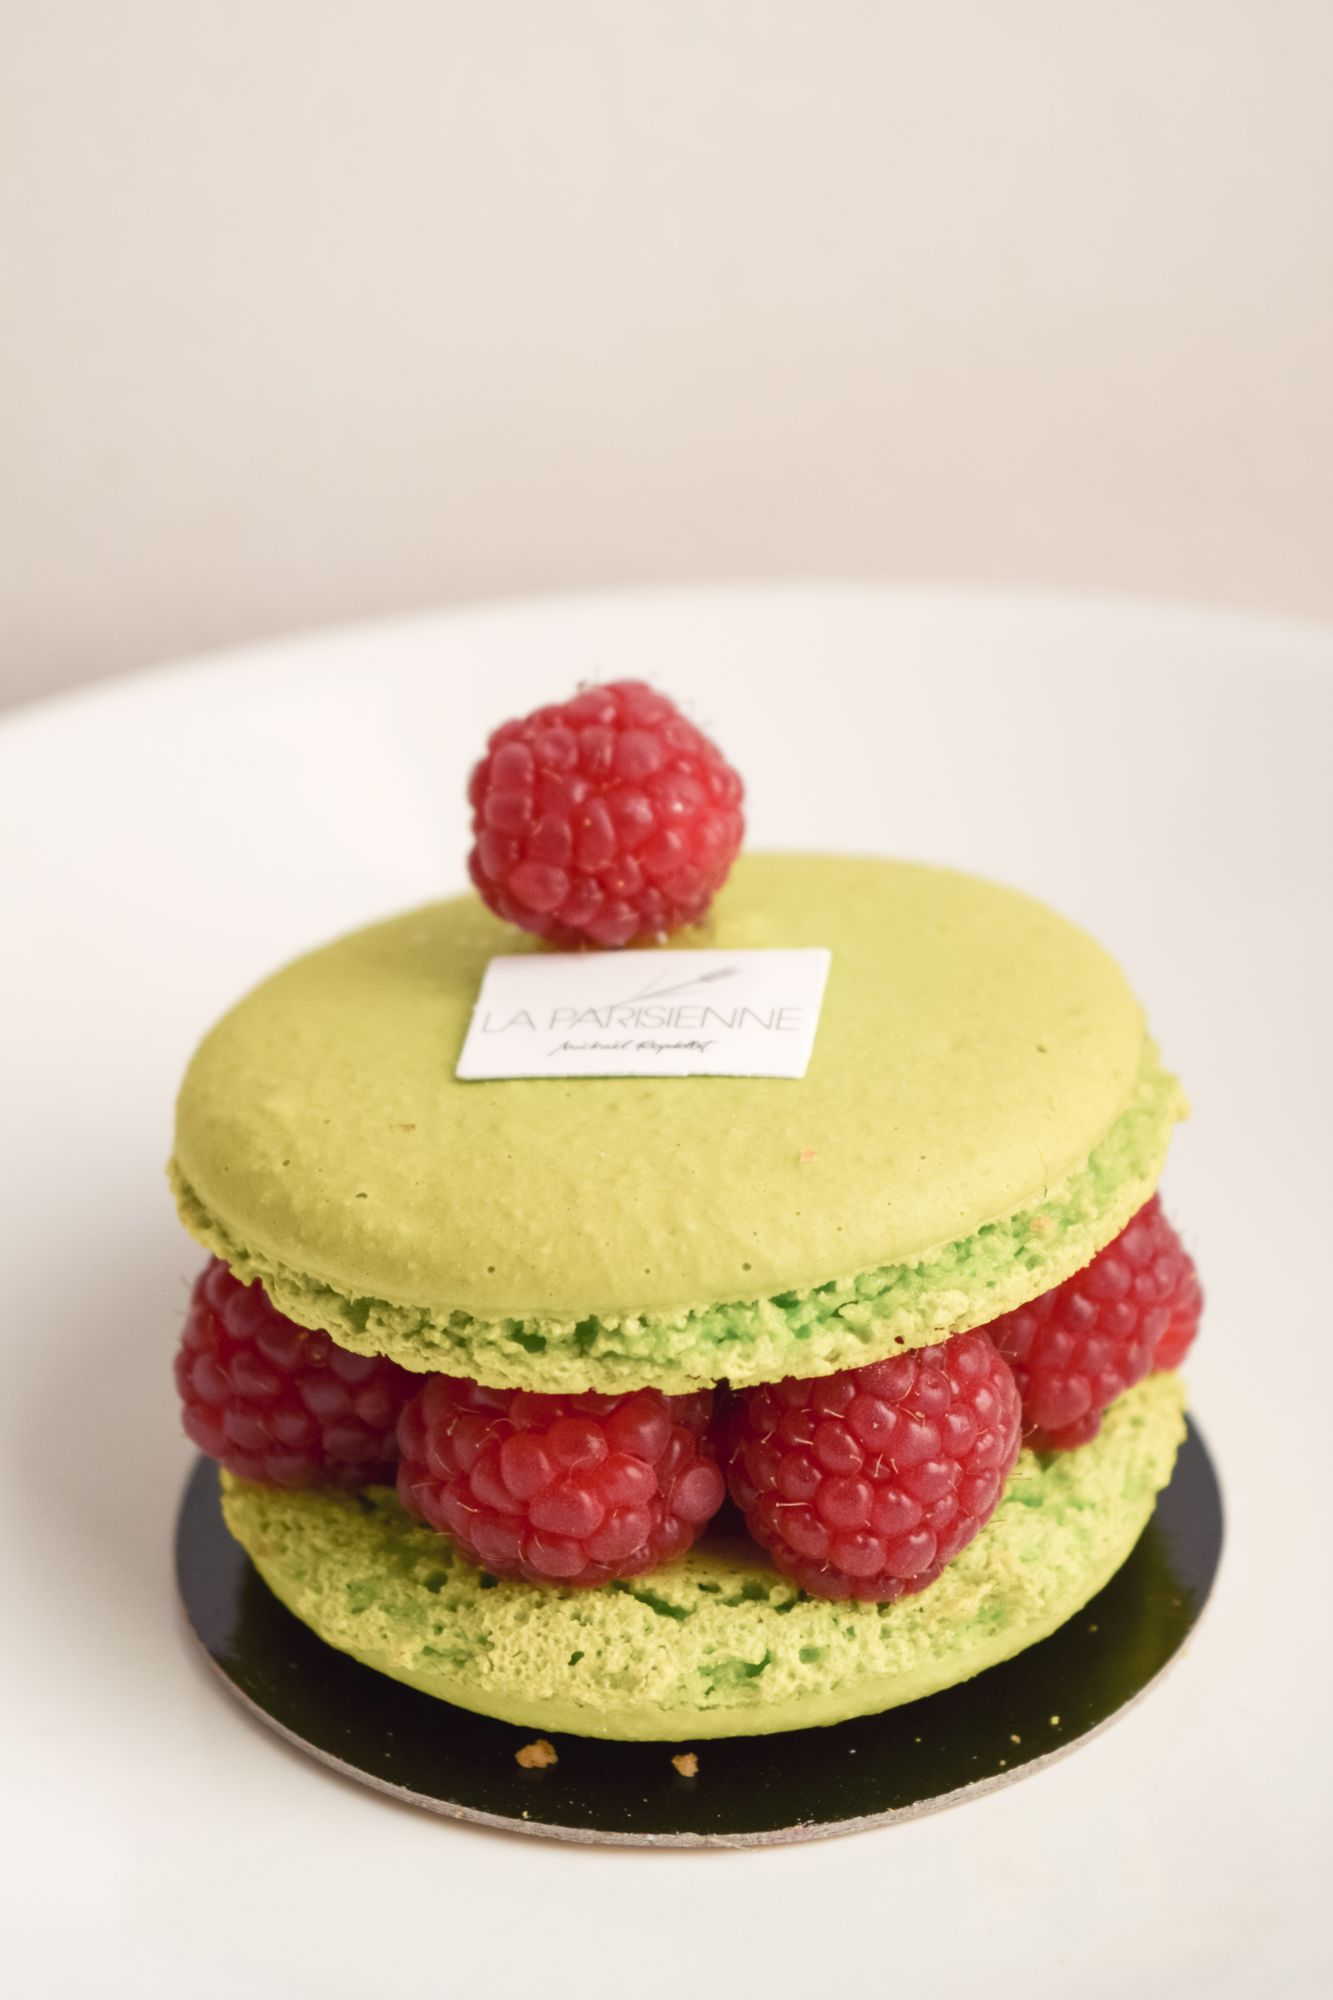 Macaronade – French Pastries to Try in Paris